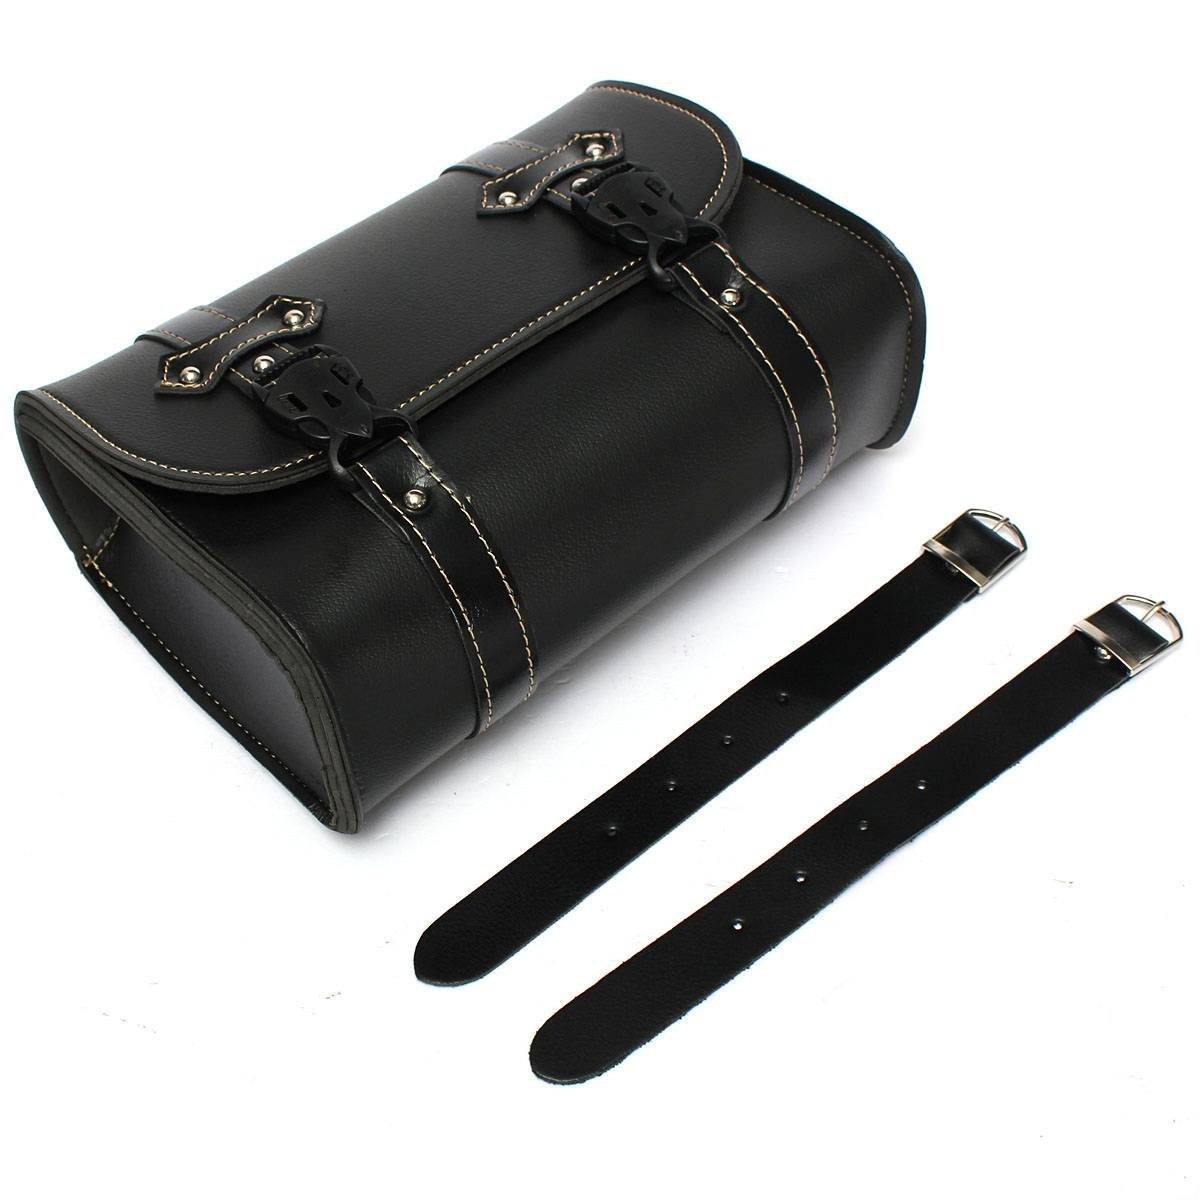 AUTO Universal Moto Saddle Pouch Bag Storage Tool in Leather For Harley Davidson Black